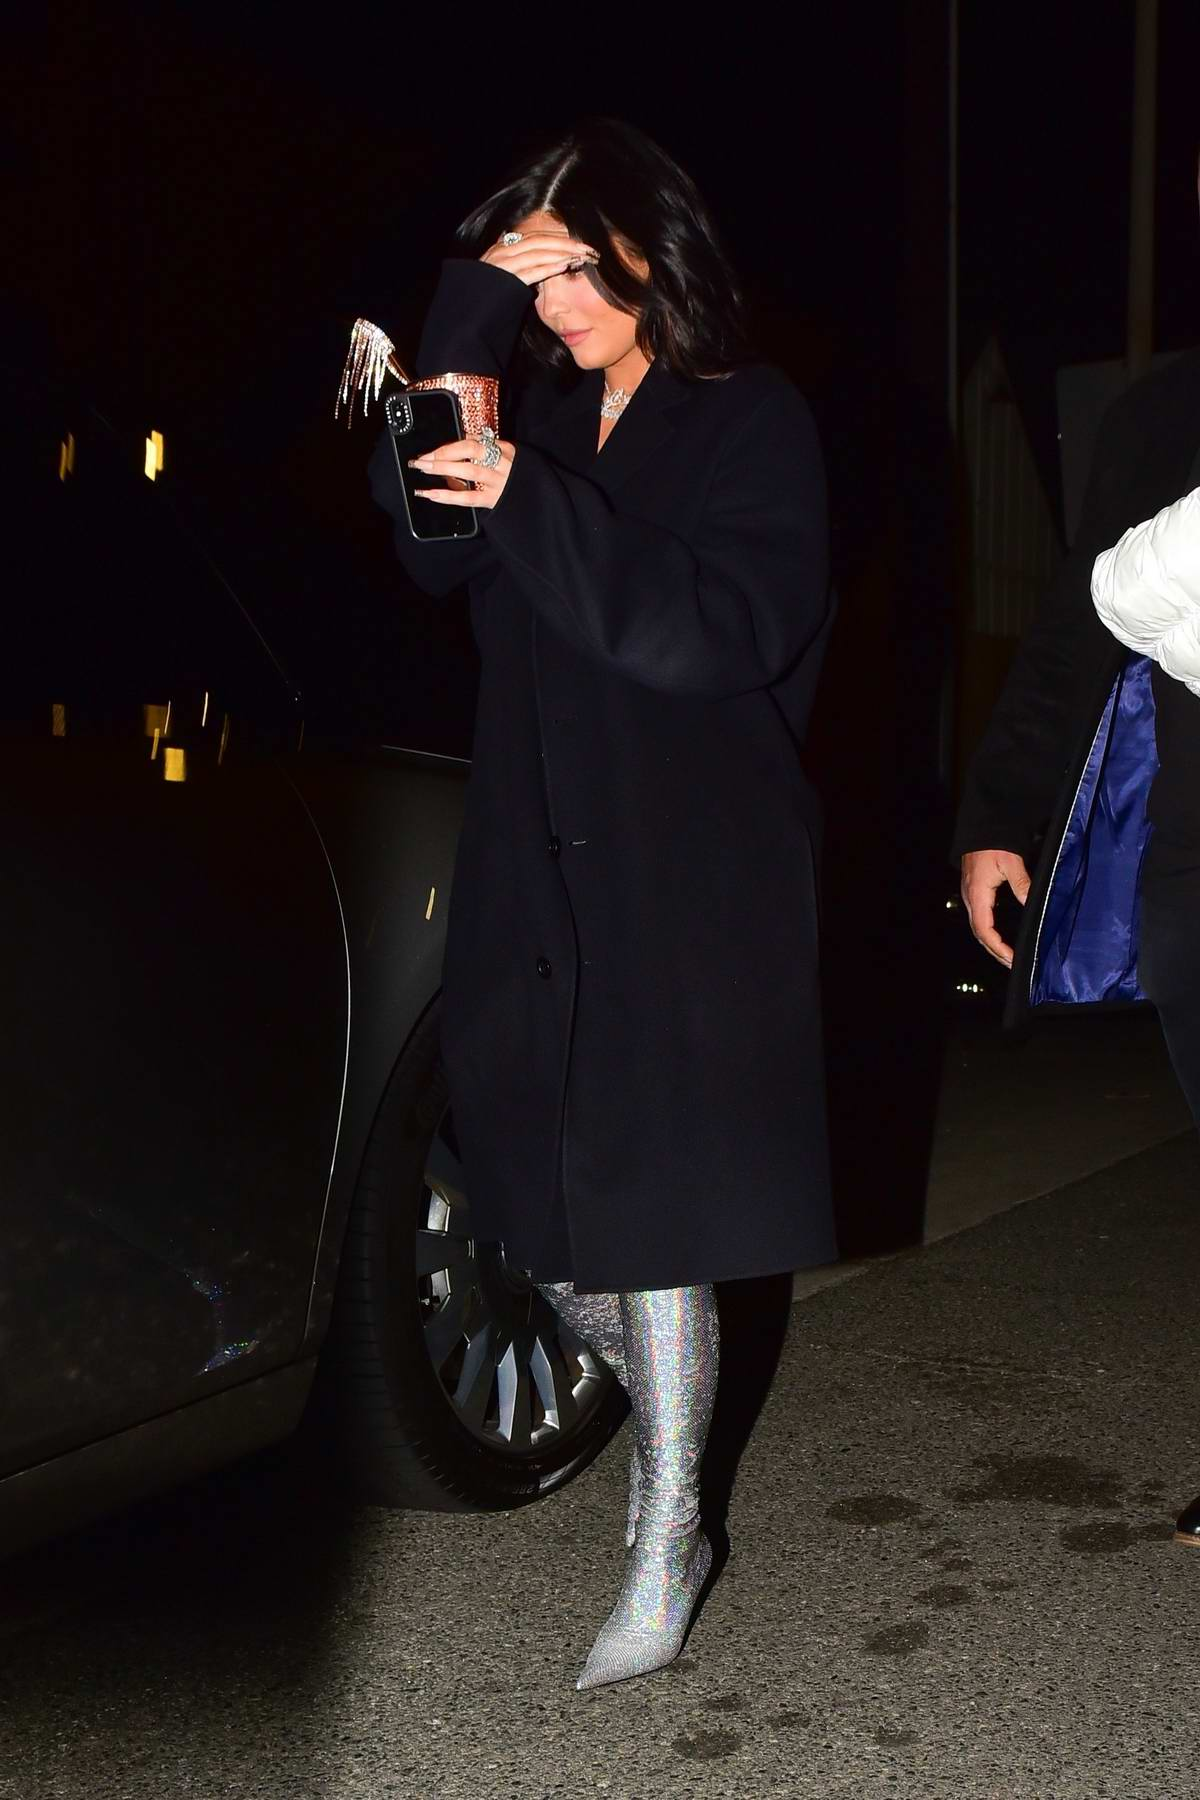 Kylie Jenner rings in the New Year alongside friends with dinner in Santa Monica, California